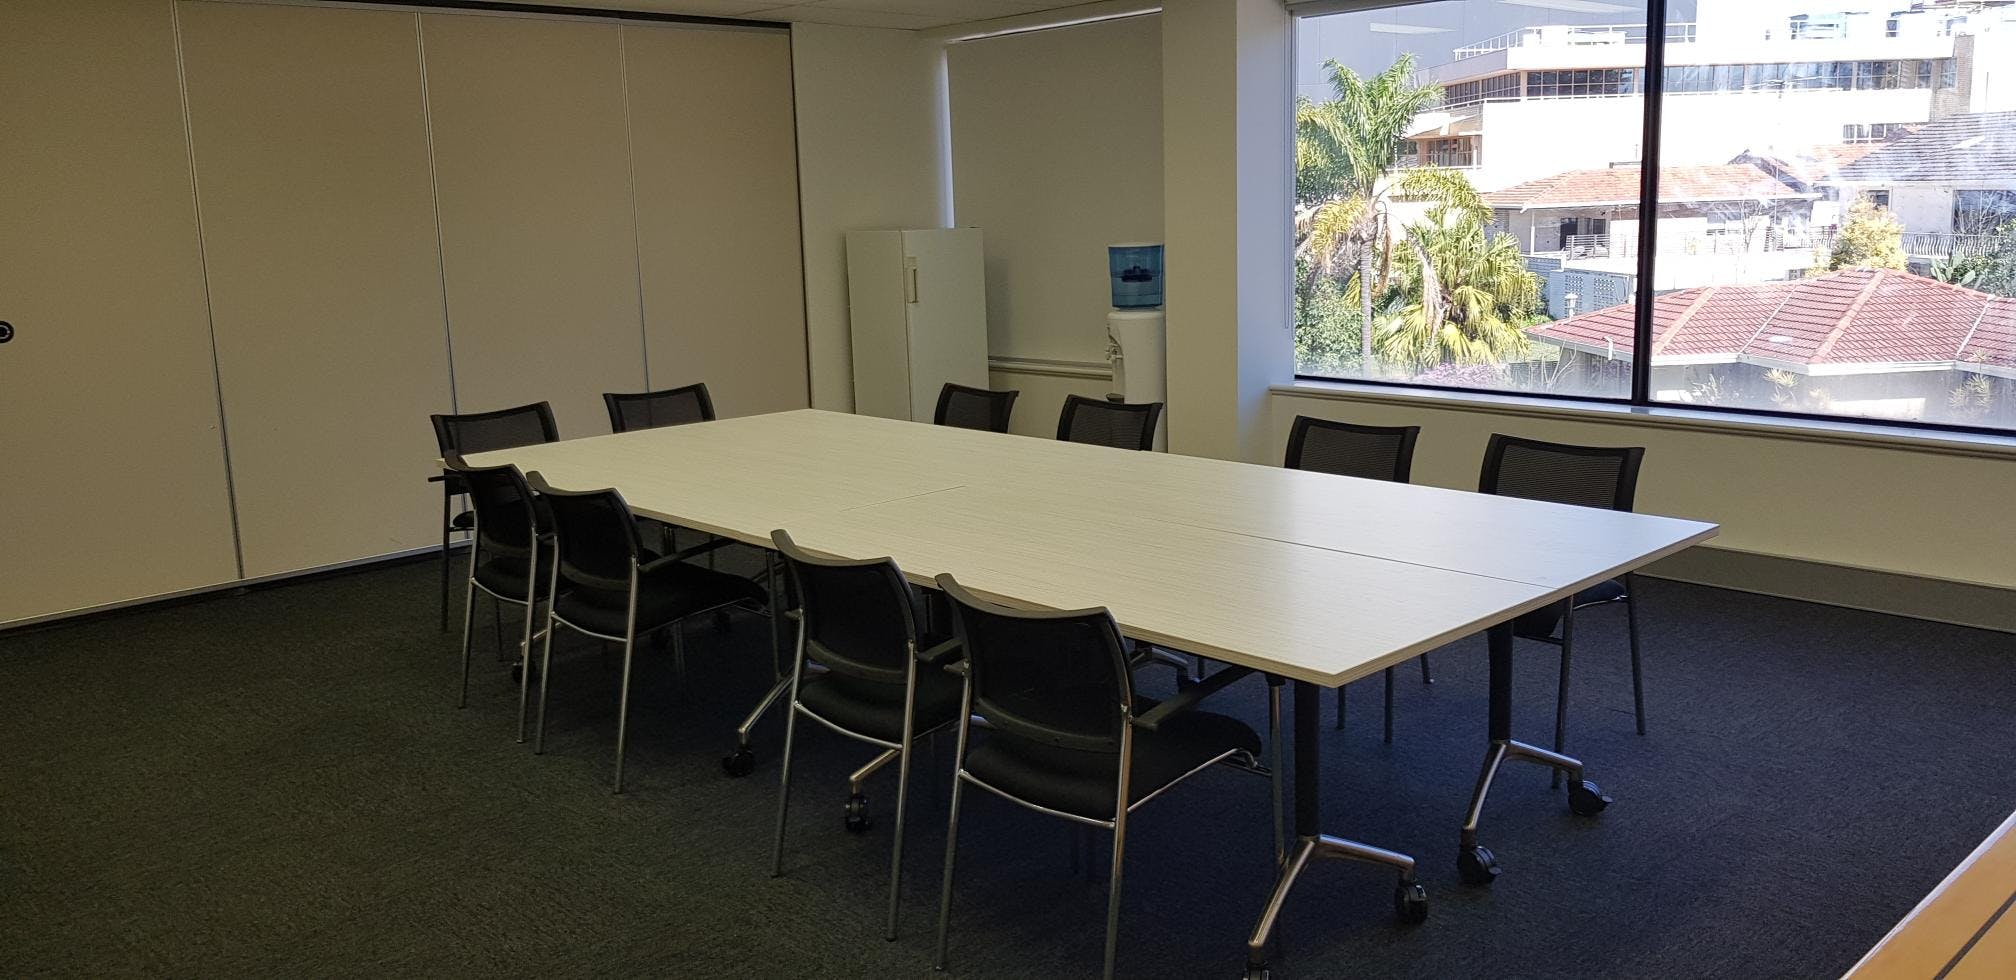 Meeting room at Kishorn Court, image 2